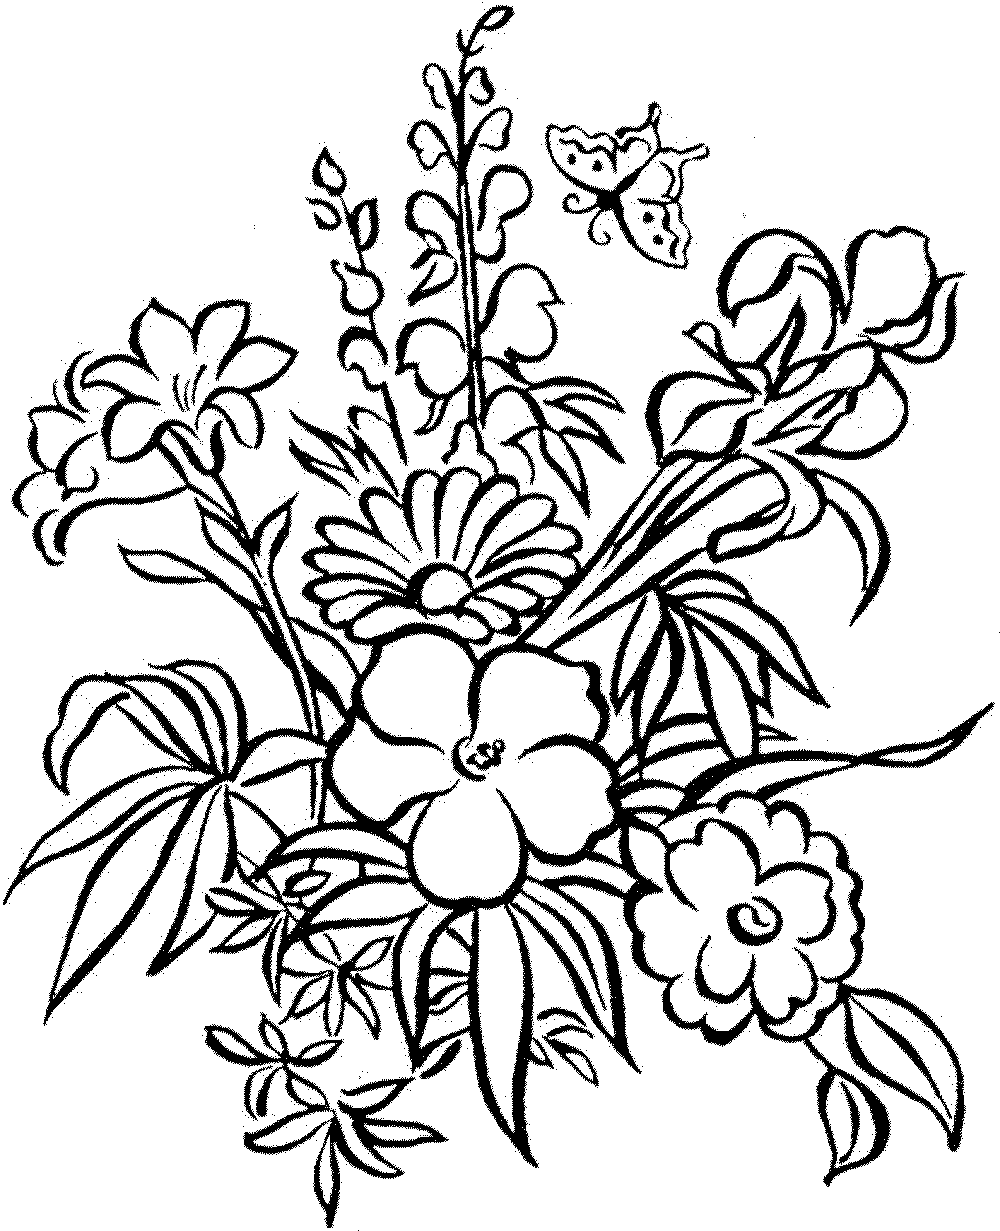 coloring pictures of a flower detailed flower coloring pages to download and print for free coloring pictures of a flower